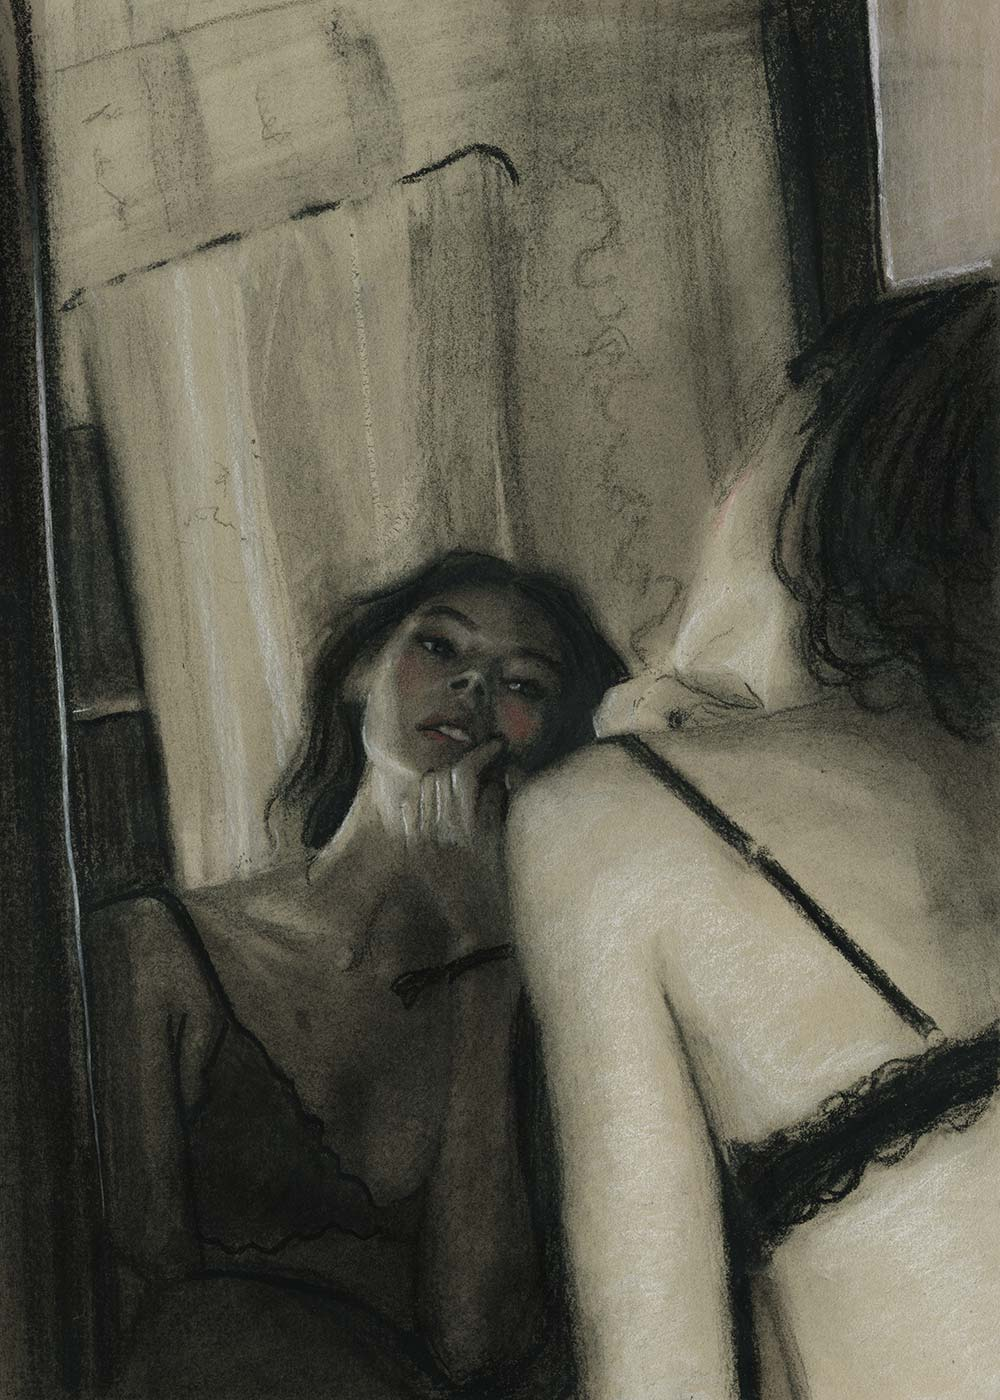 Charcoal Drawing by Fashion Artist Danny Roberts of Mona Johannesson Getting ready